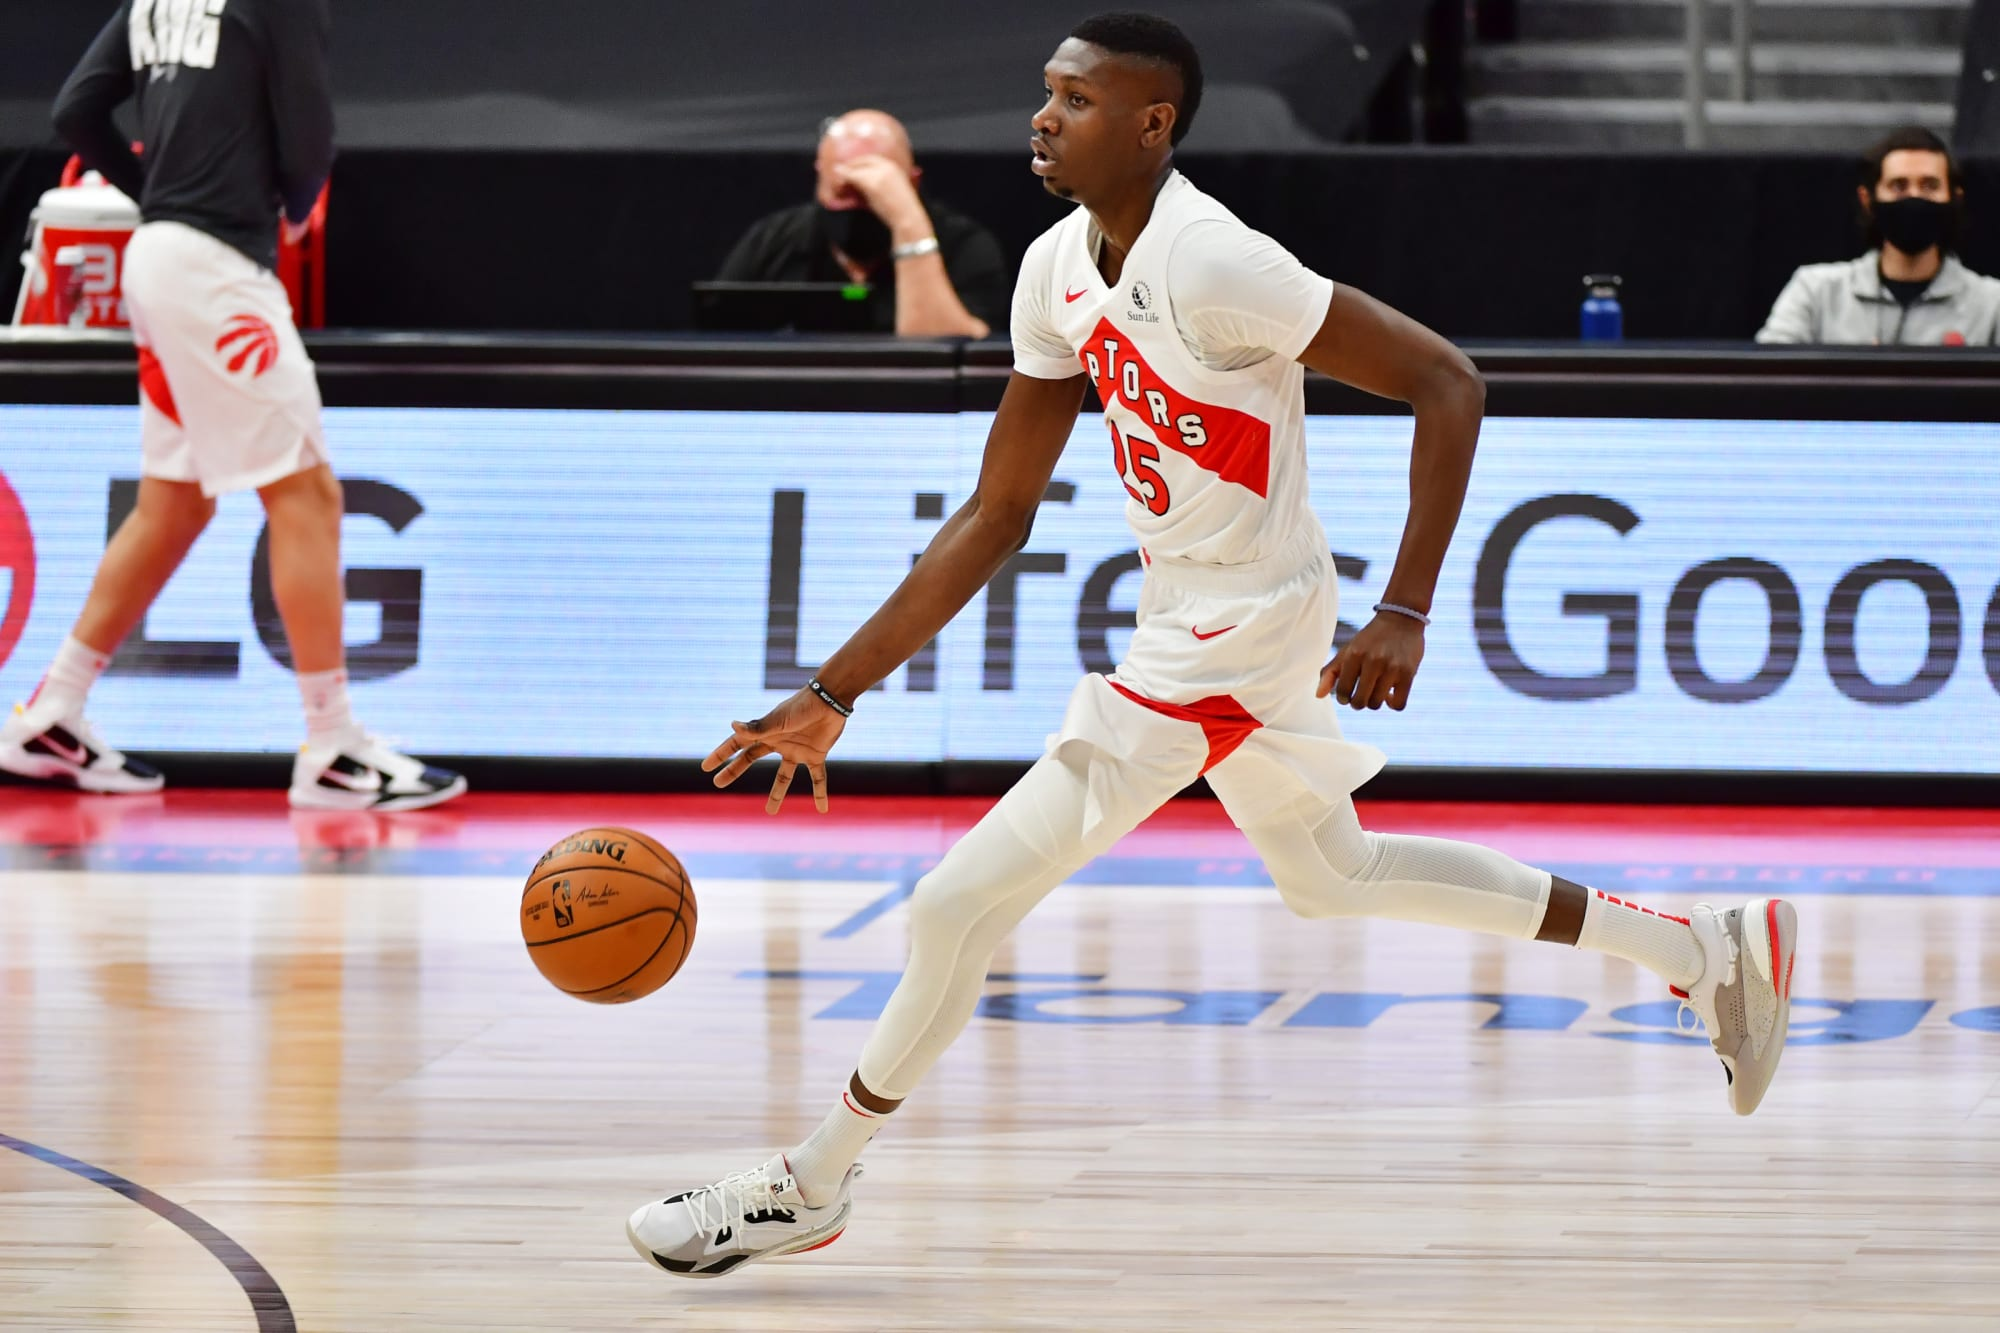 Raptors: PER claims that Chris Boucher is up there with the NBA's best